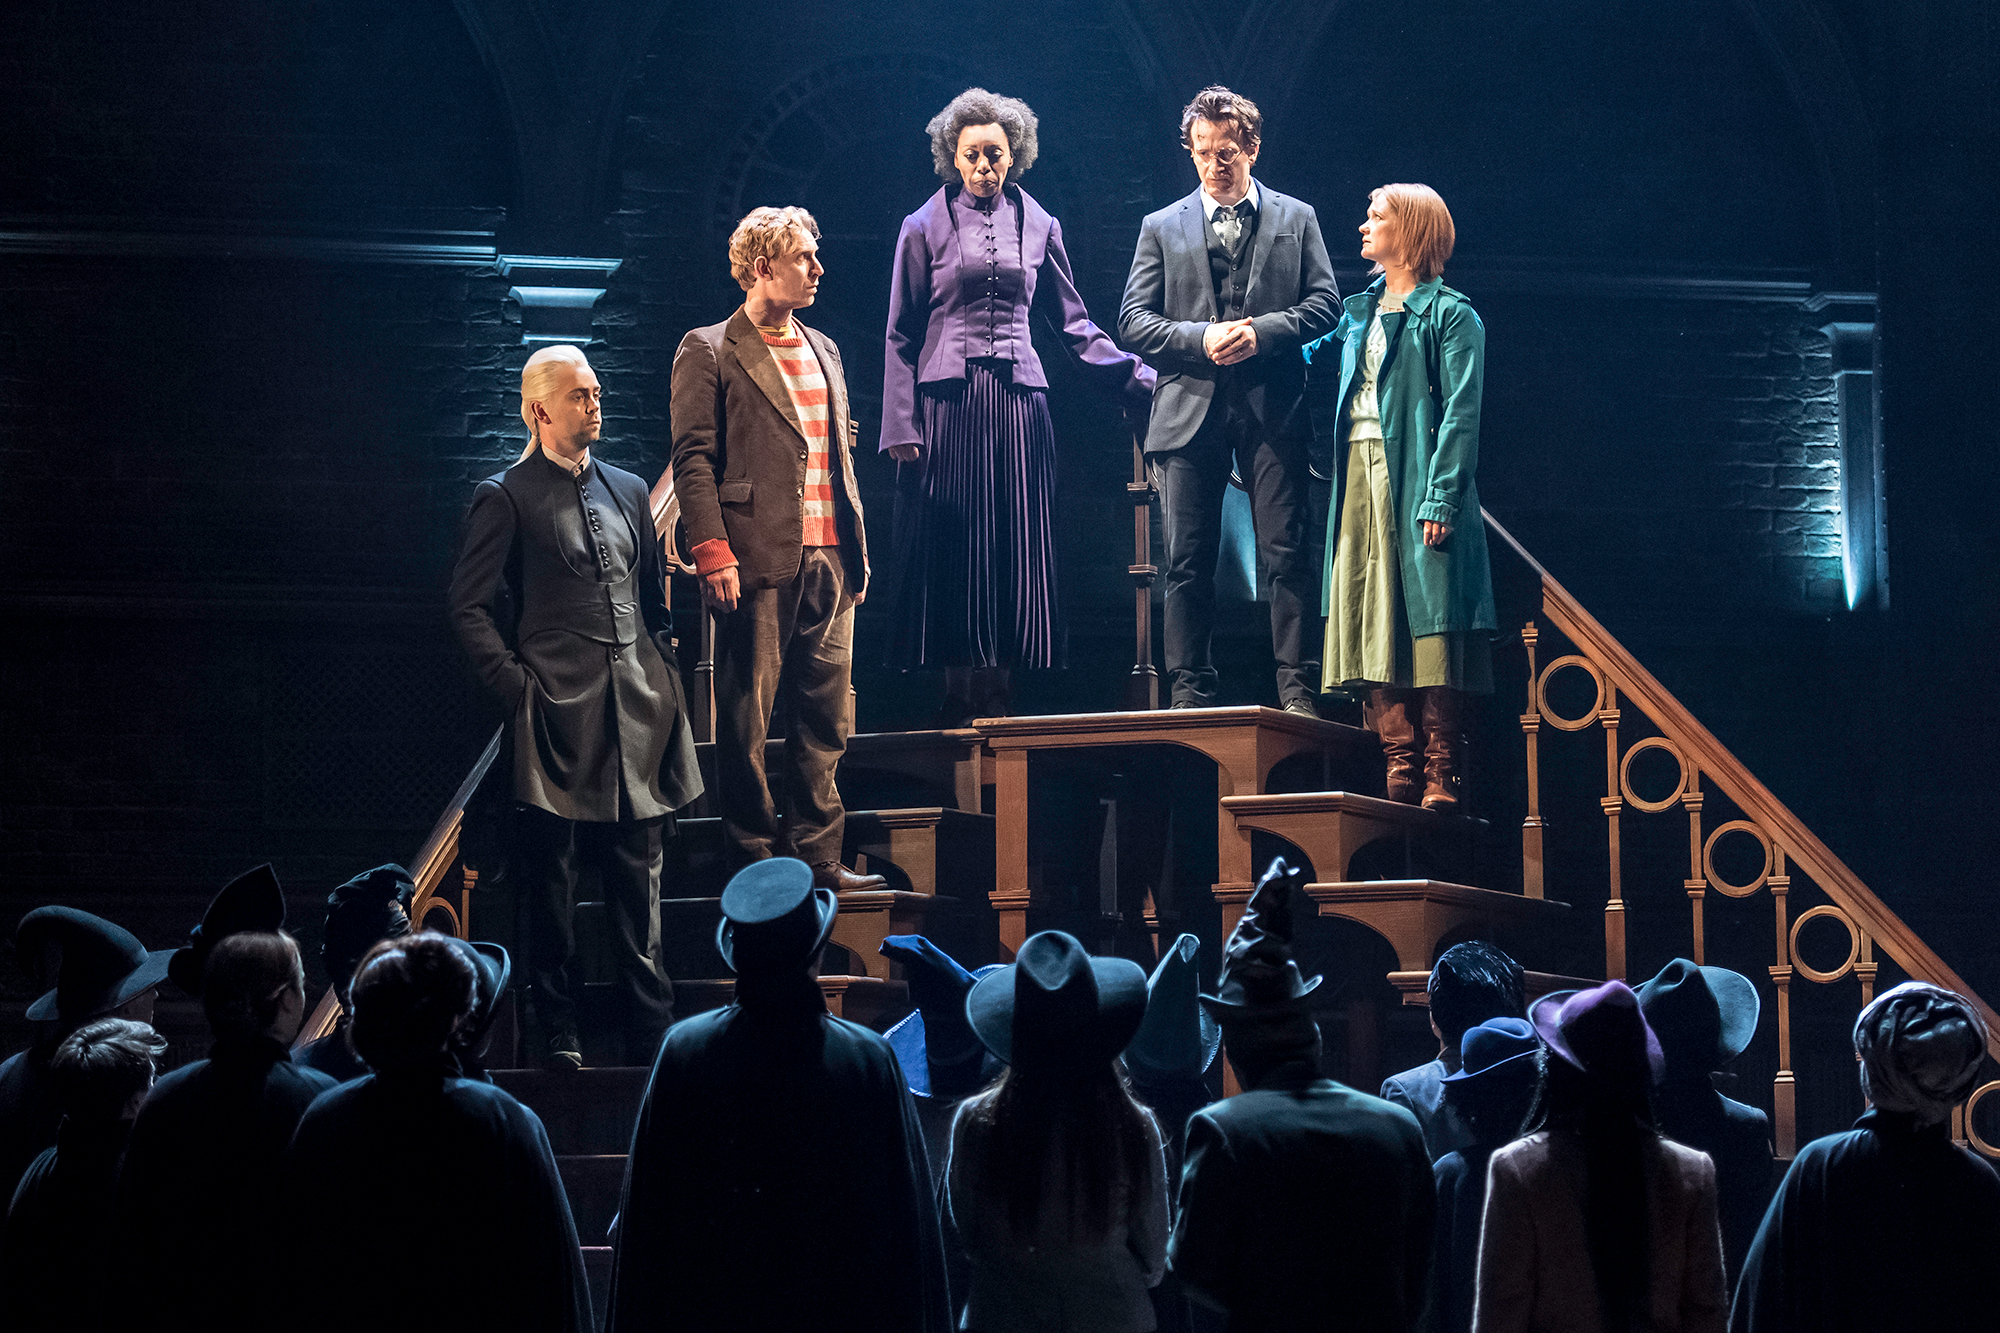 From left: Alex Price as Draco Malfoy, Paul Thornley as Ron Weasley, Noma Dumezweni as Hermione Granger, Jamie Parker as Harry Potter, and Poppy Miller as Ginny Potter in Harry Potter and the Cursed Child.